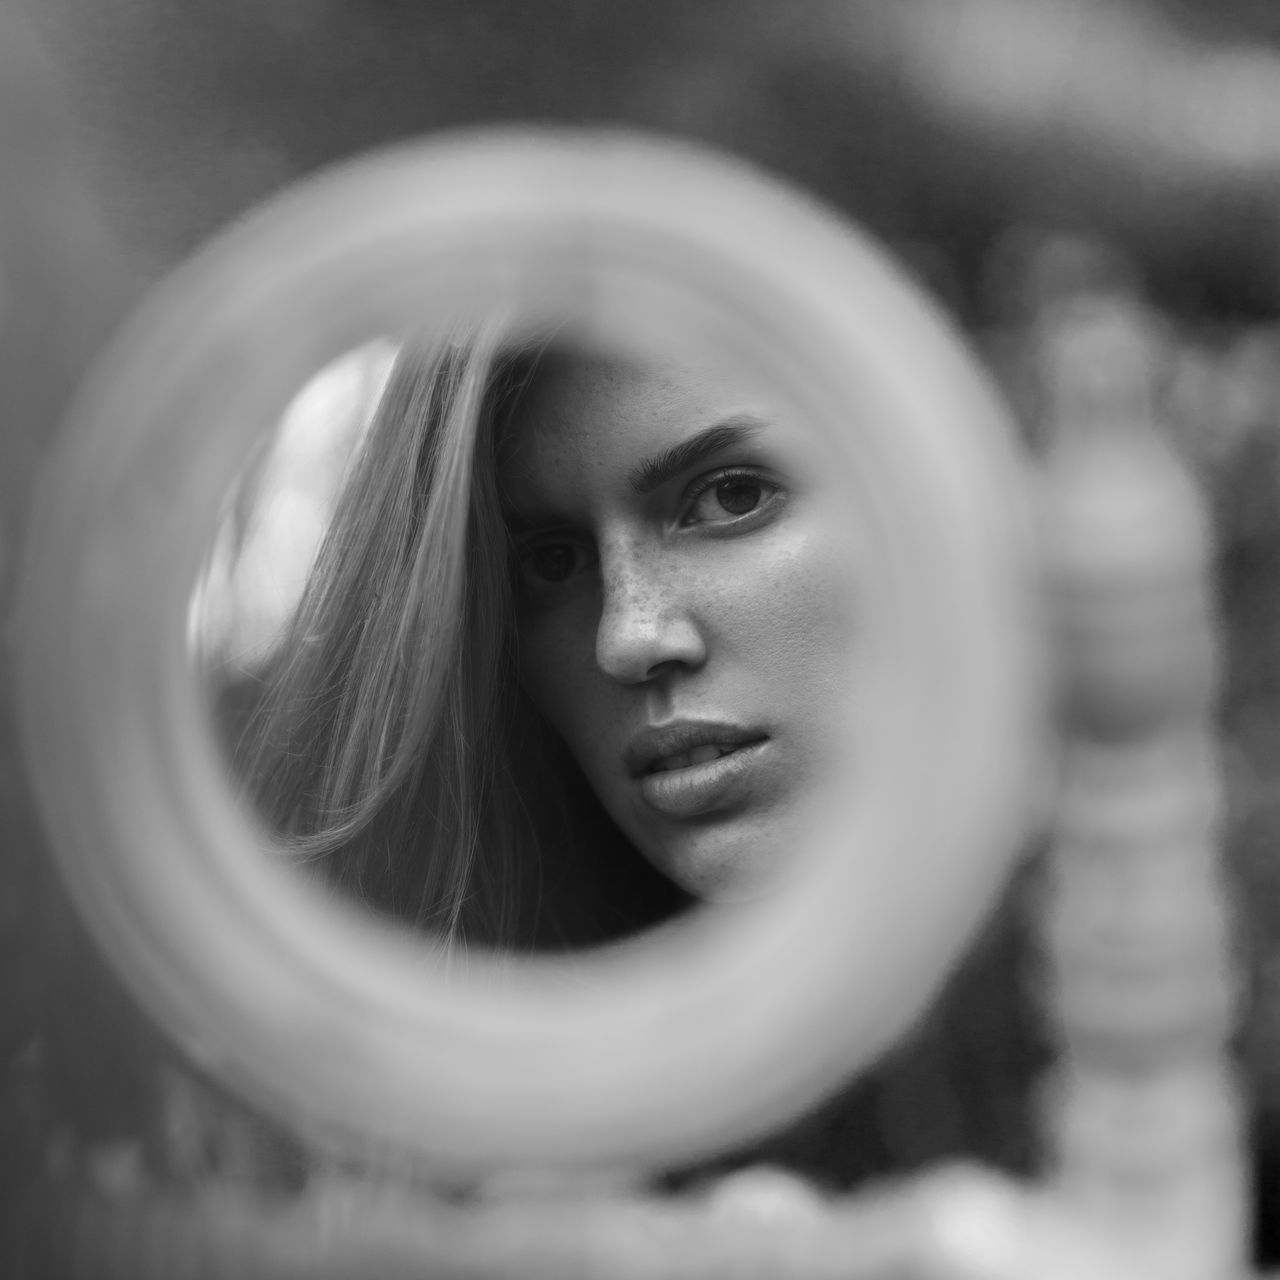 https://www.instagram.com/eglelaurinavice/ Beautiful Woman Blackandwhite Bokeh Close-up Day EyeEm Best Shots Eyes Face Freckles Girl Lips Mirror Natural Light Portrait One Person Outdoors People Portrait Of A Woman Real People Skin Woman Young Adult Young Women